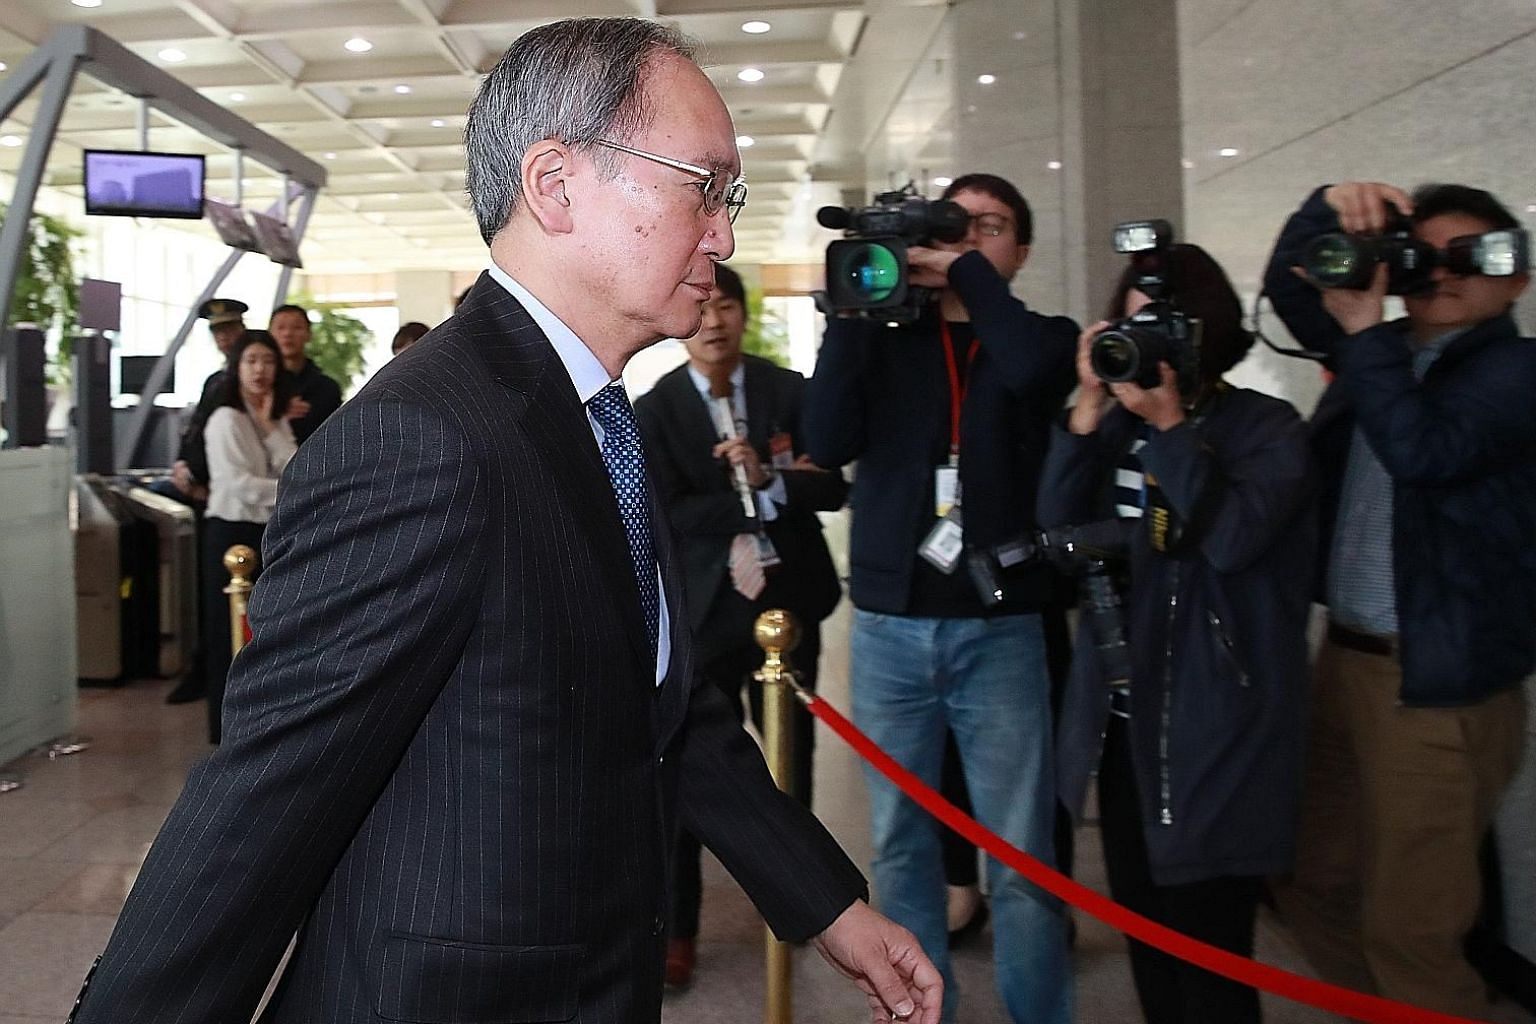 Japan's Ambassador to South Korea Yasumasa Nagamine arriving at the Foreign Ministry in Seoul yesterday after being summoned by South Korea.